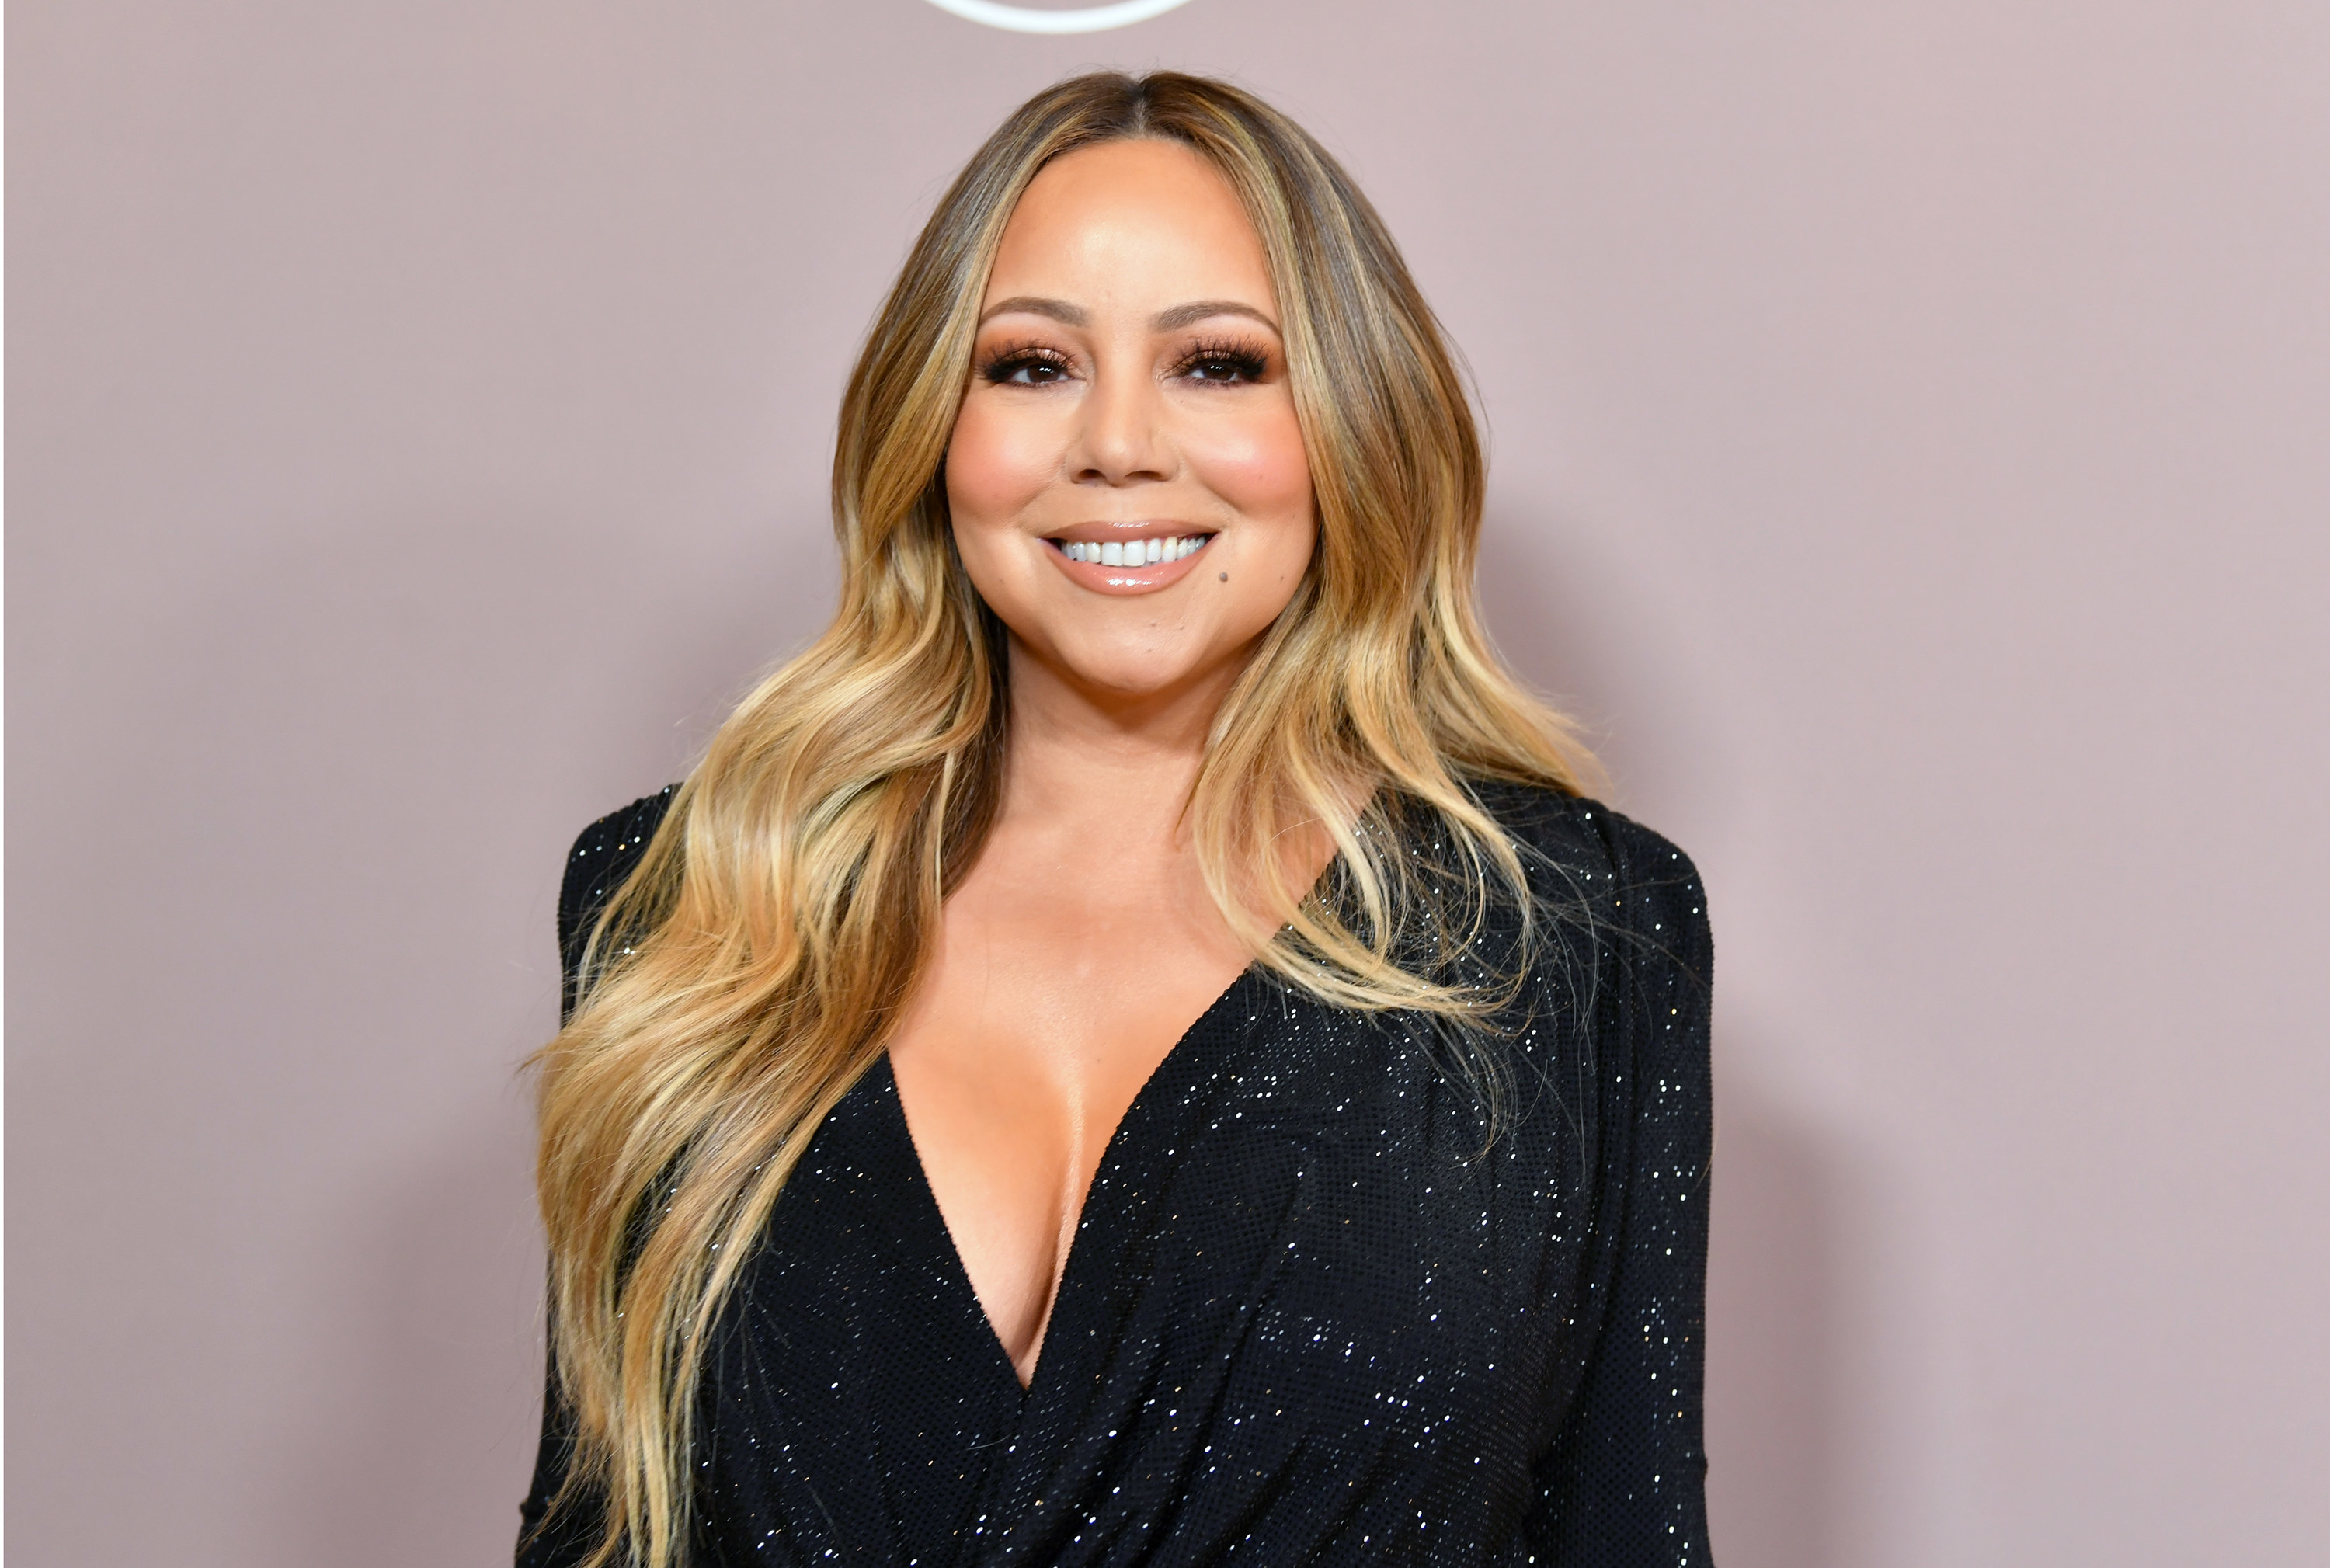 Mariah Carey attends Variety's 2019 Power of Women: Los Angeles presented by Lifetime at the Beverly Wilshire Four Seasons Hotel on October 11, 2019 in Beverly Hills, California